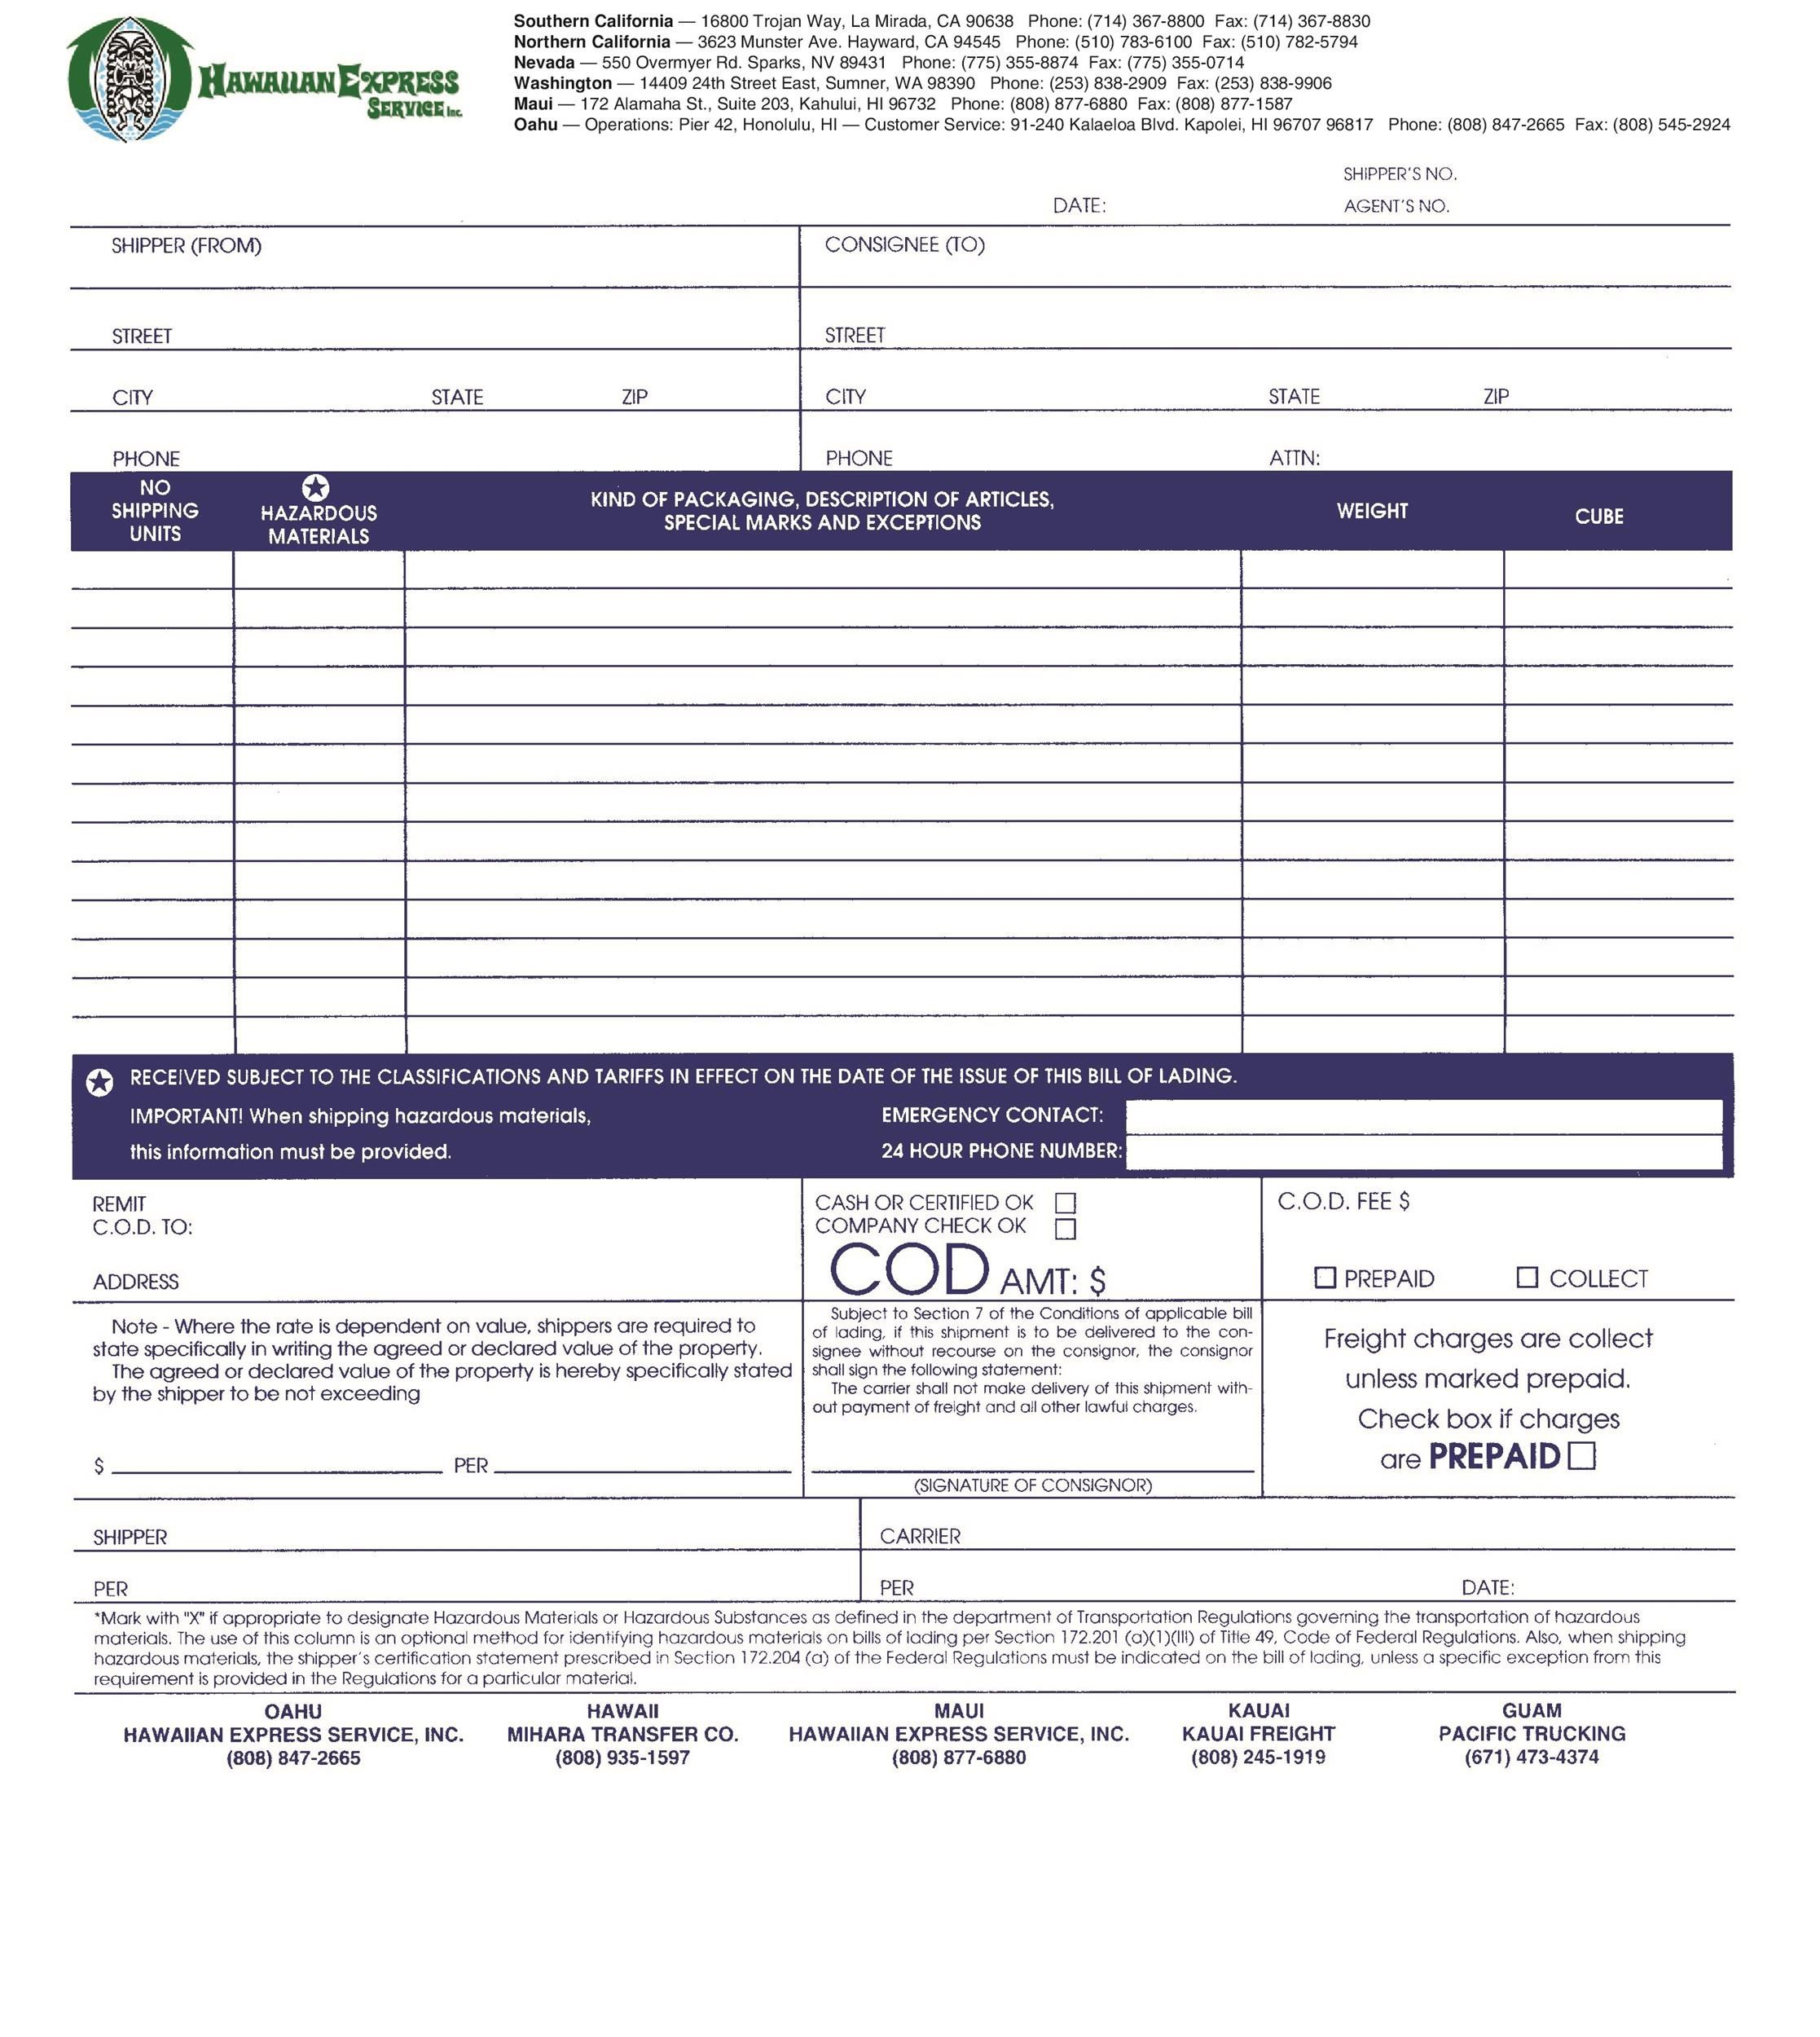 006 Remarkable Free Bill Of Lading Template Inspiration  Download Pdf FormFull